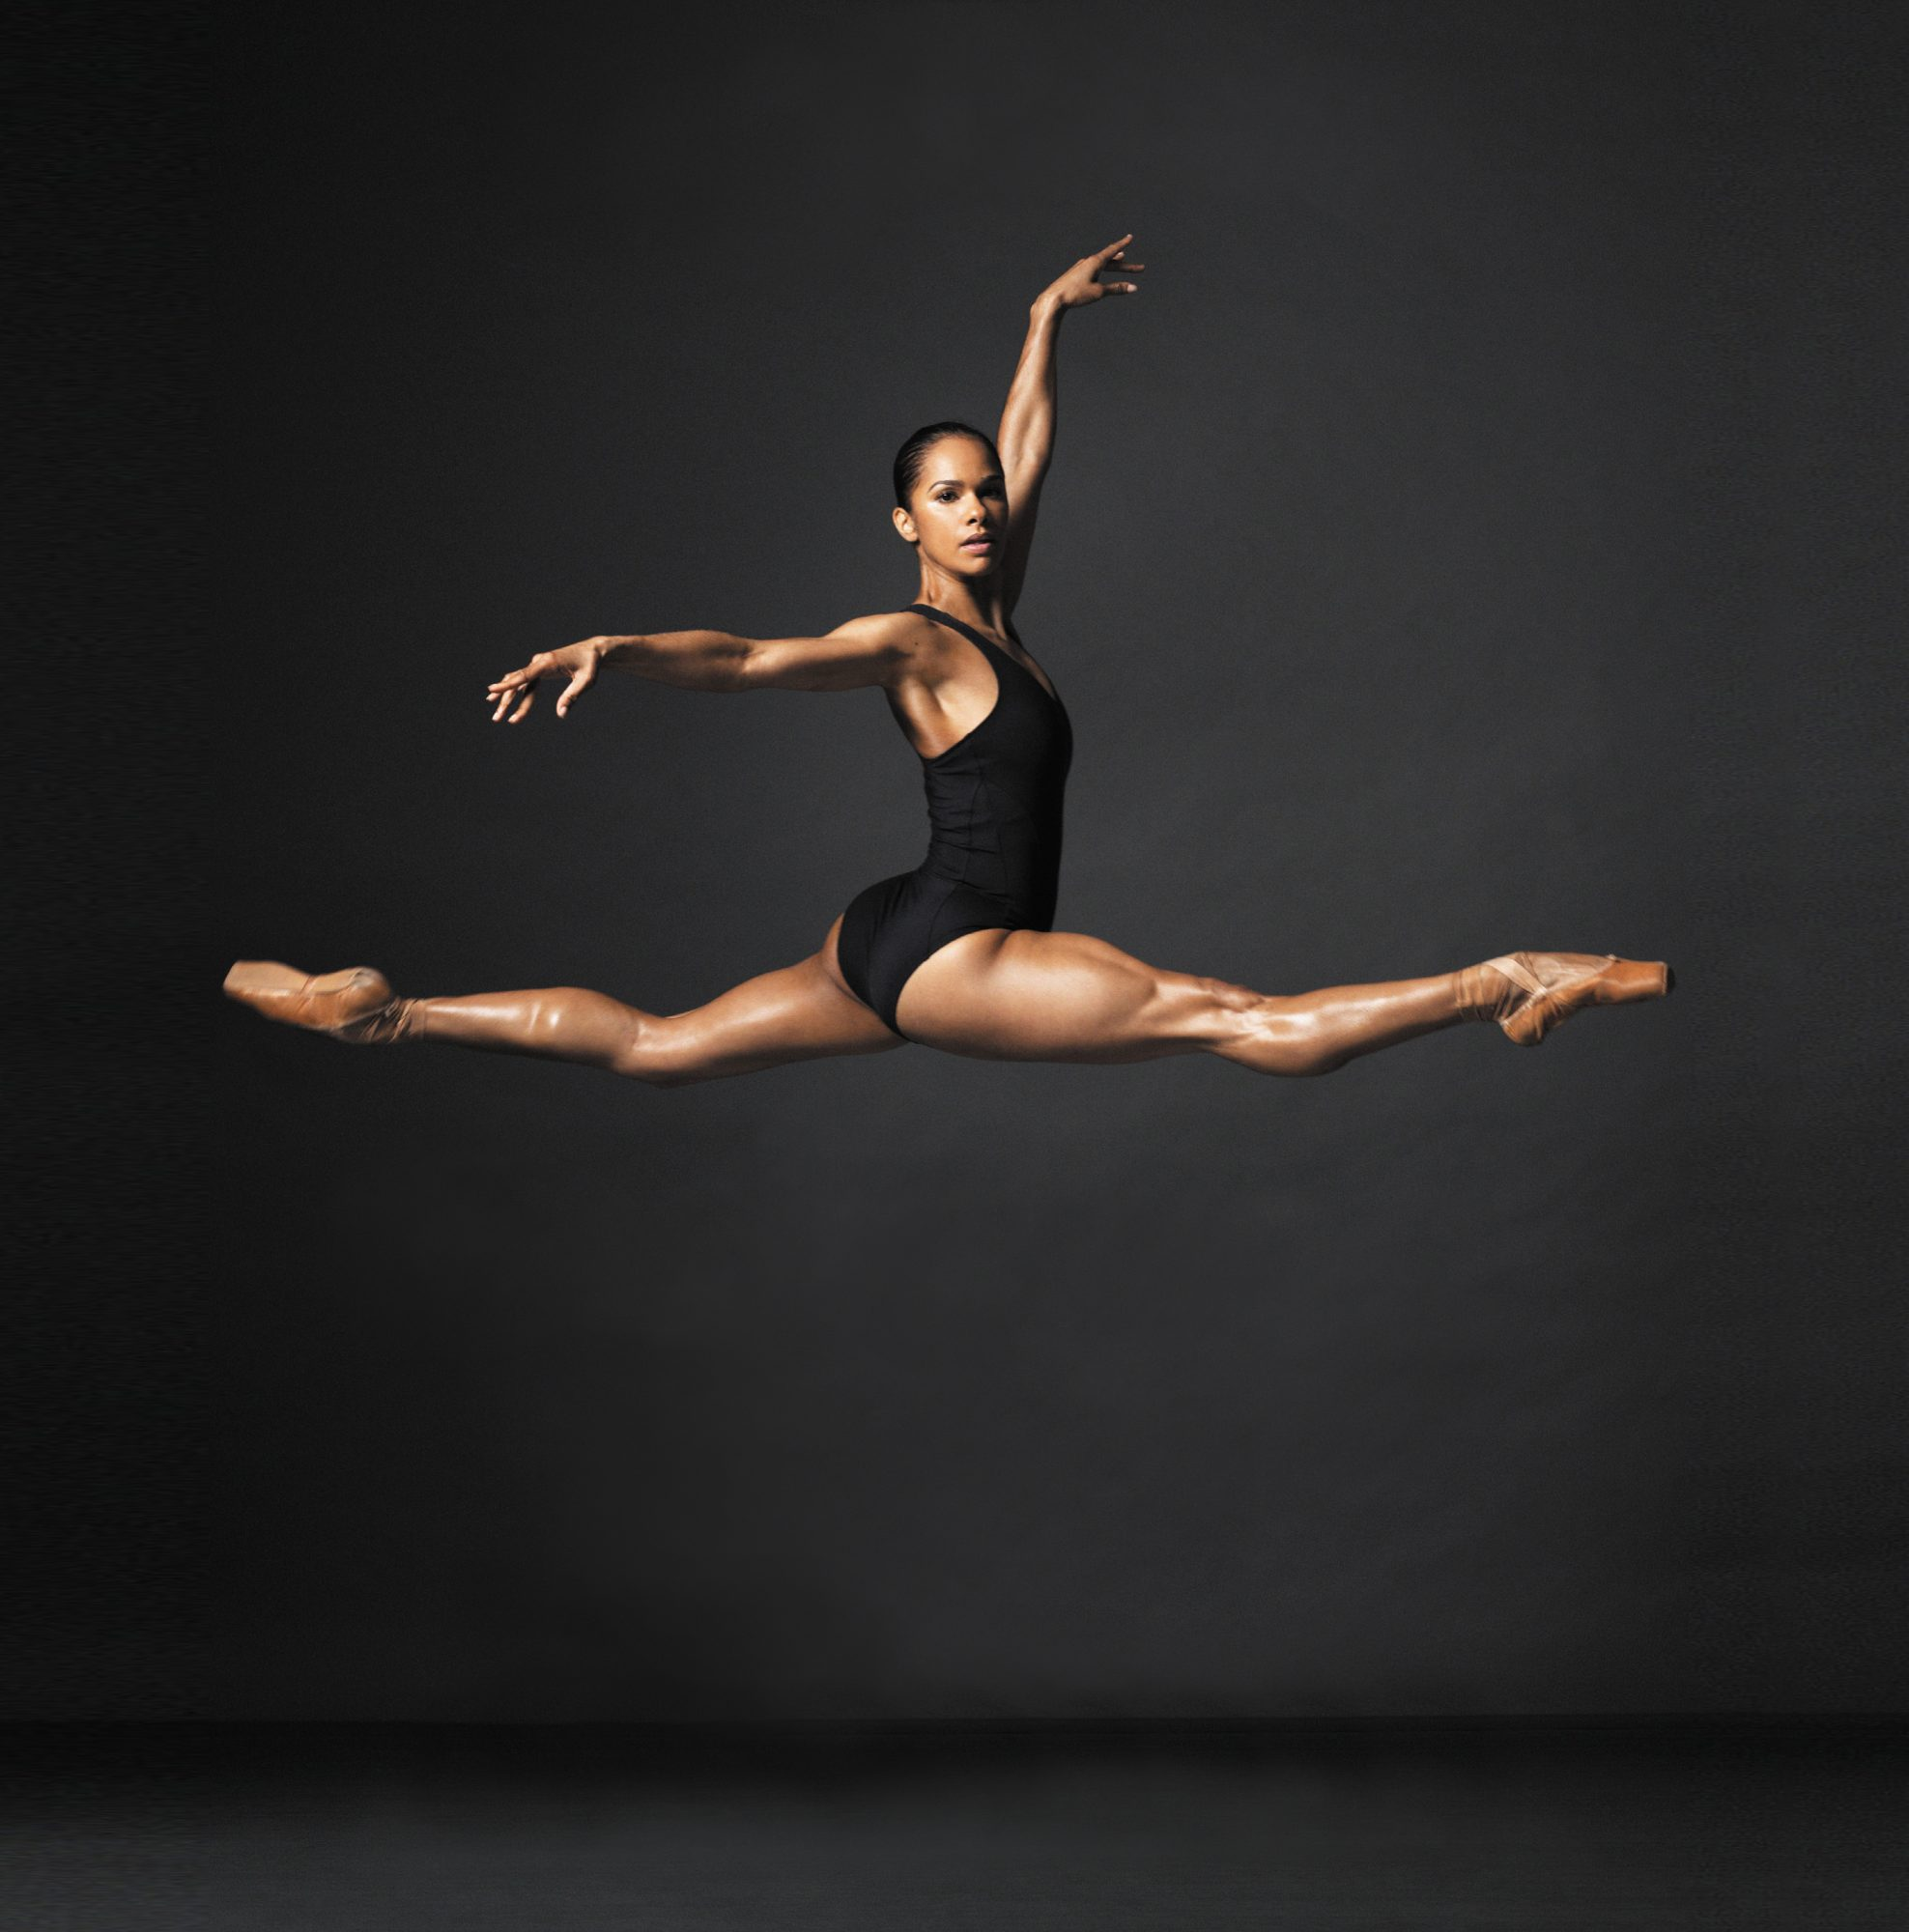 misty-copeland-ballet-body-book-no-text